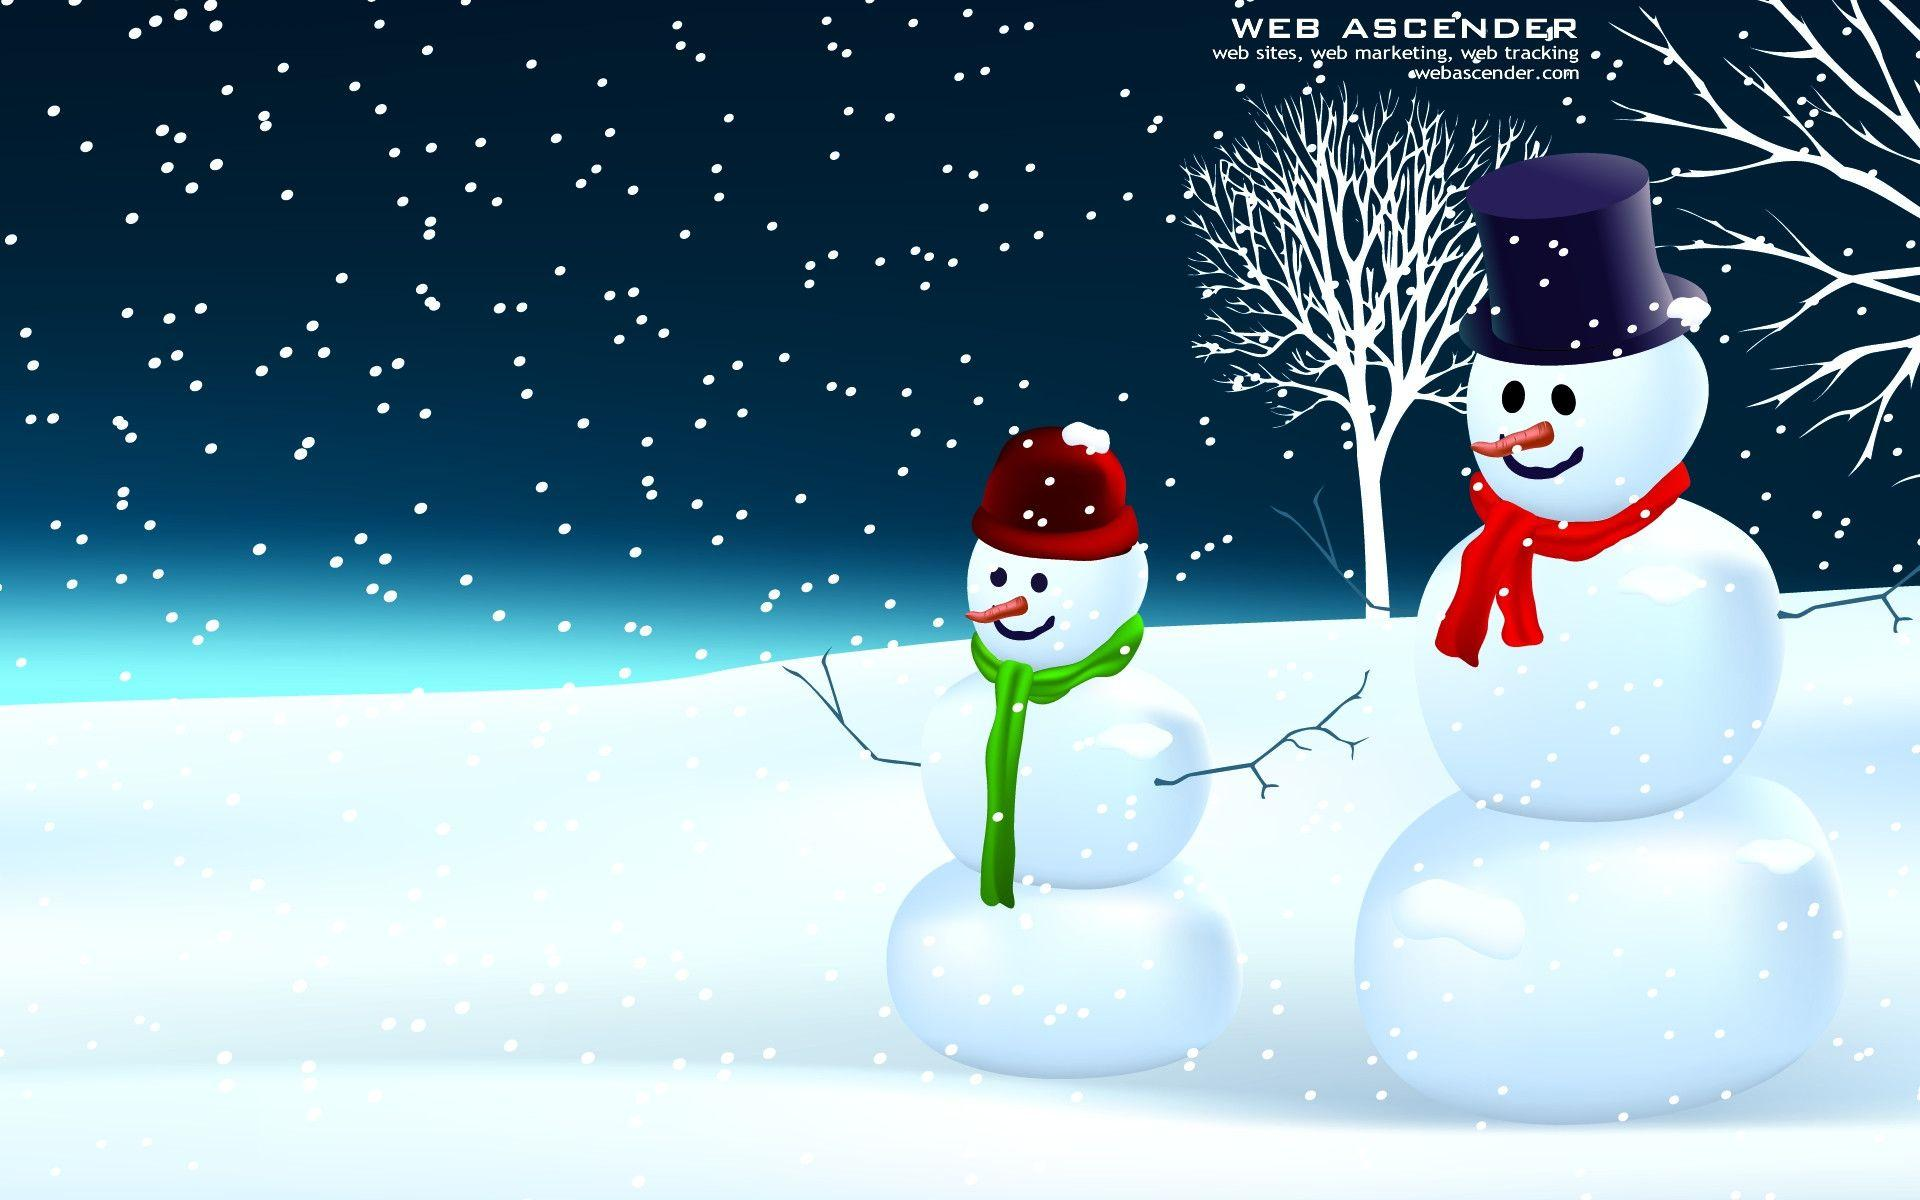 tag snowman desktop wallpapers - photo #36